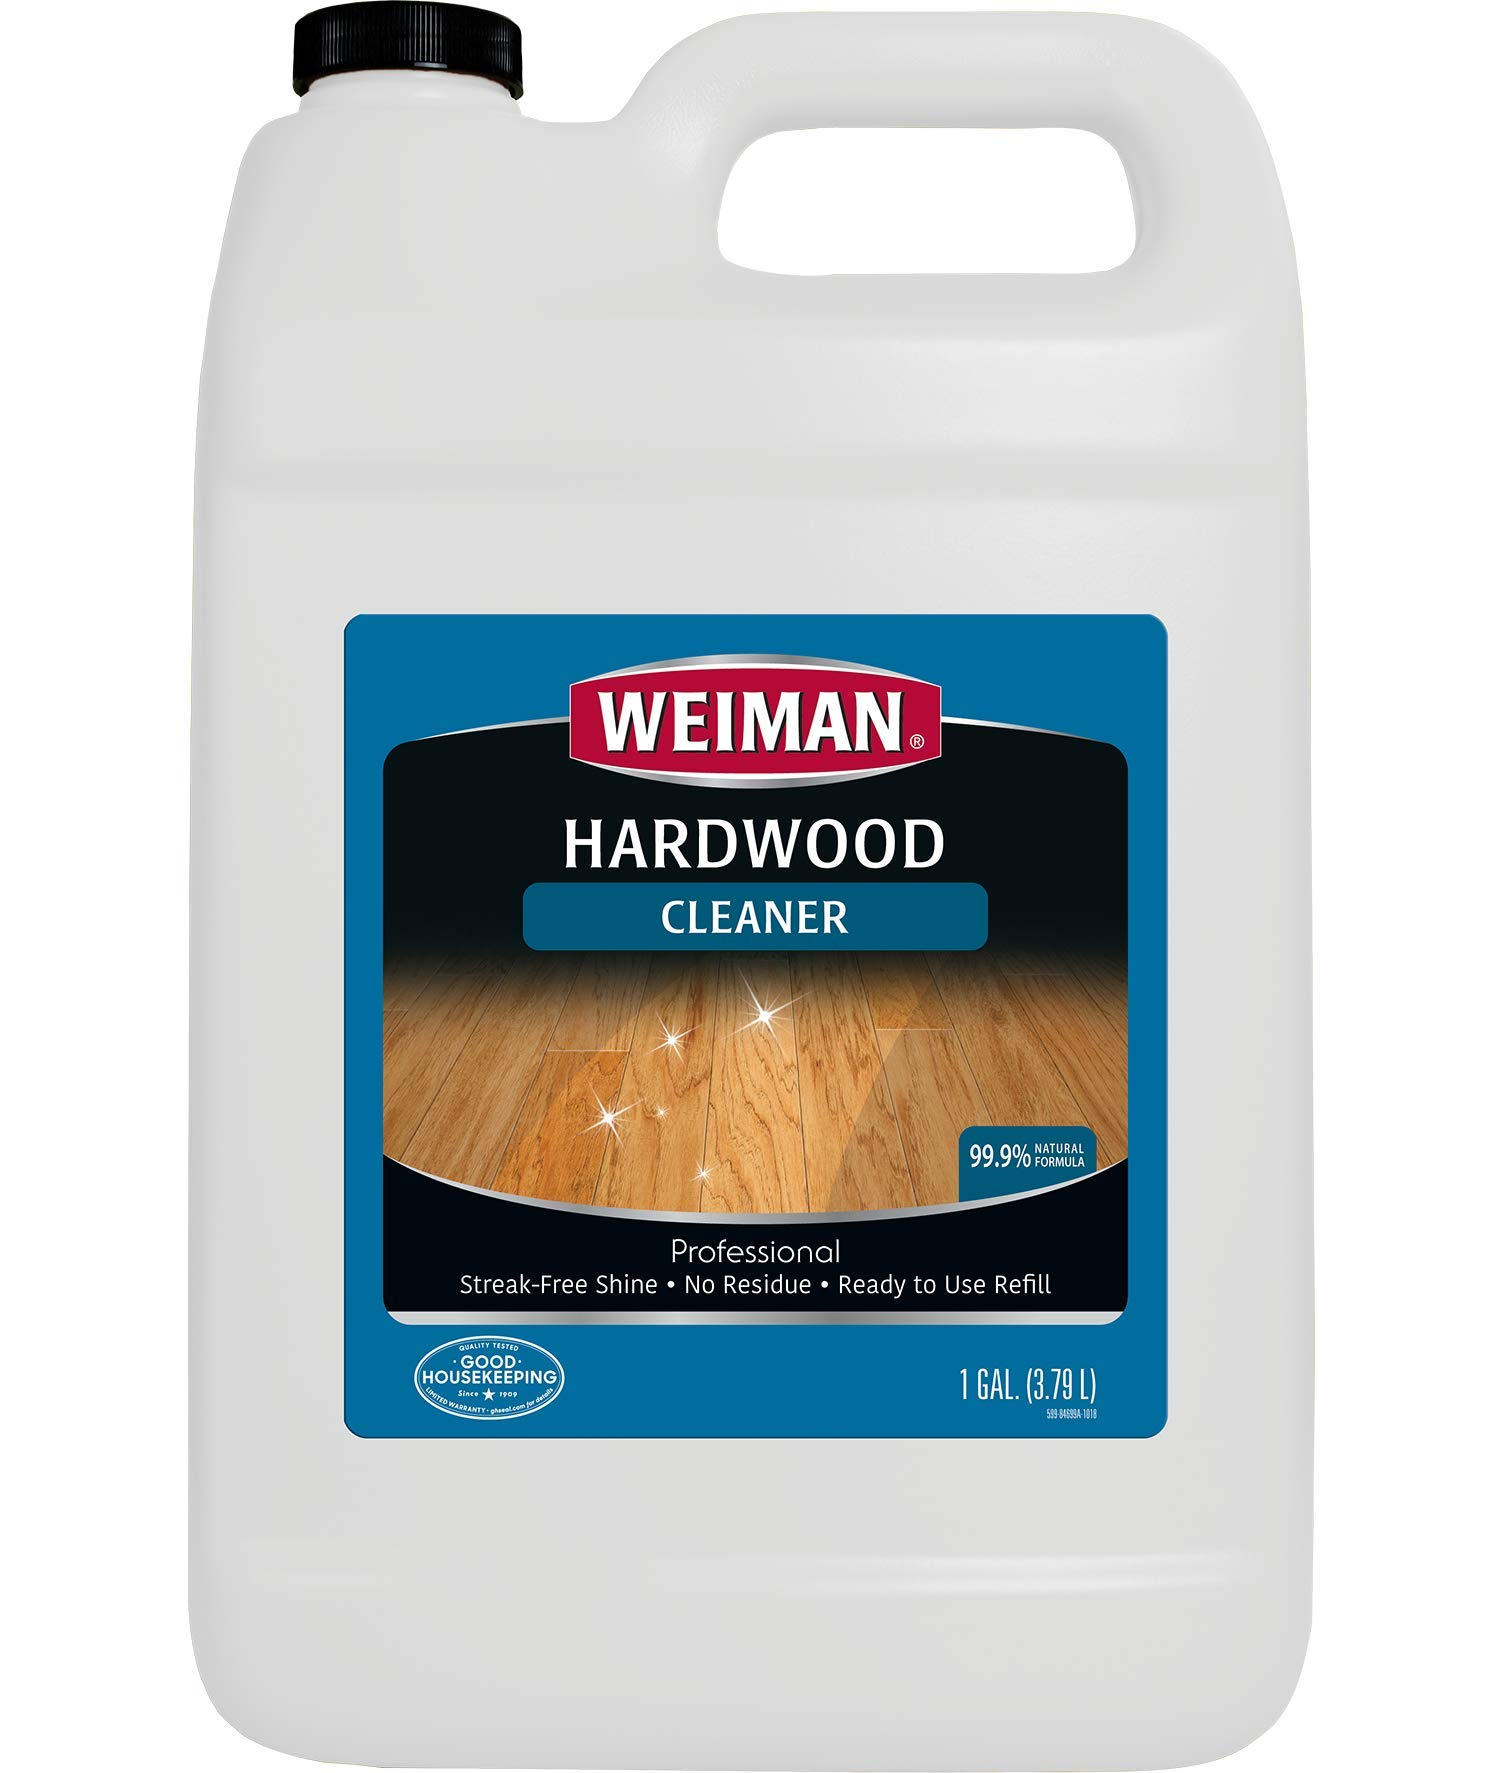 Weiman Hardwood Floor Cleaner 128 FL. OZ. Refill - Professional Strength